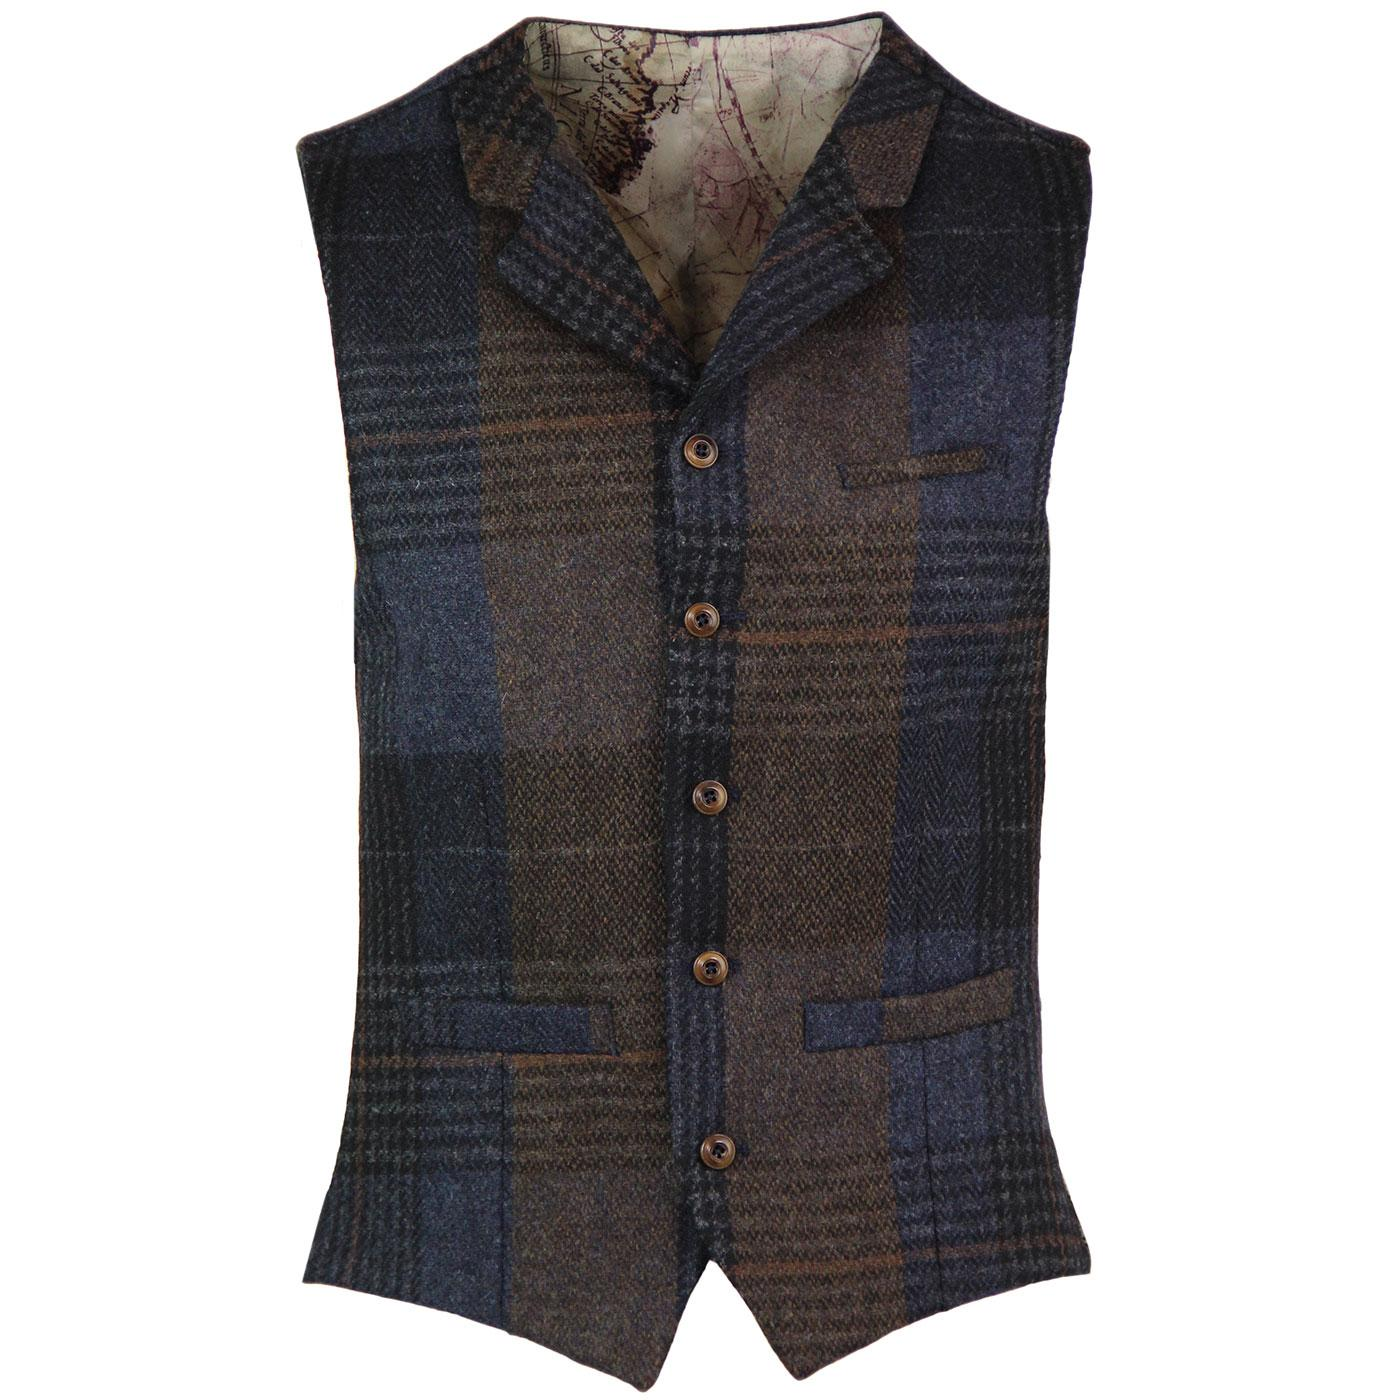 GIBSON LONDON Mod Check Lapel Waistcoat NAVY/BROWN